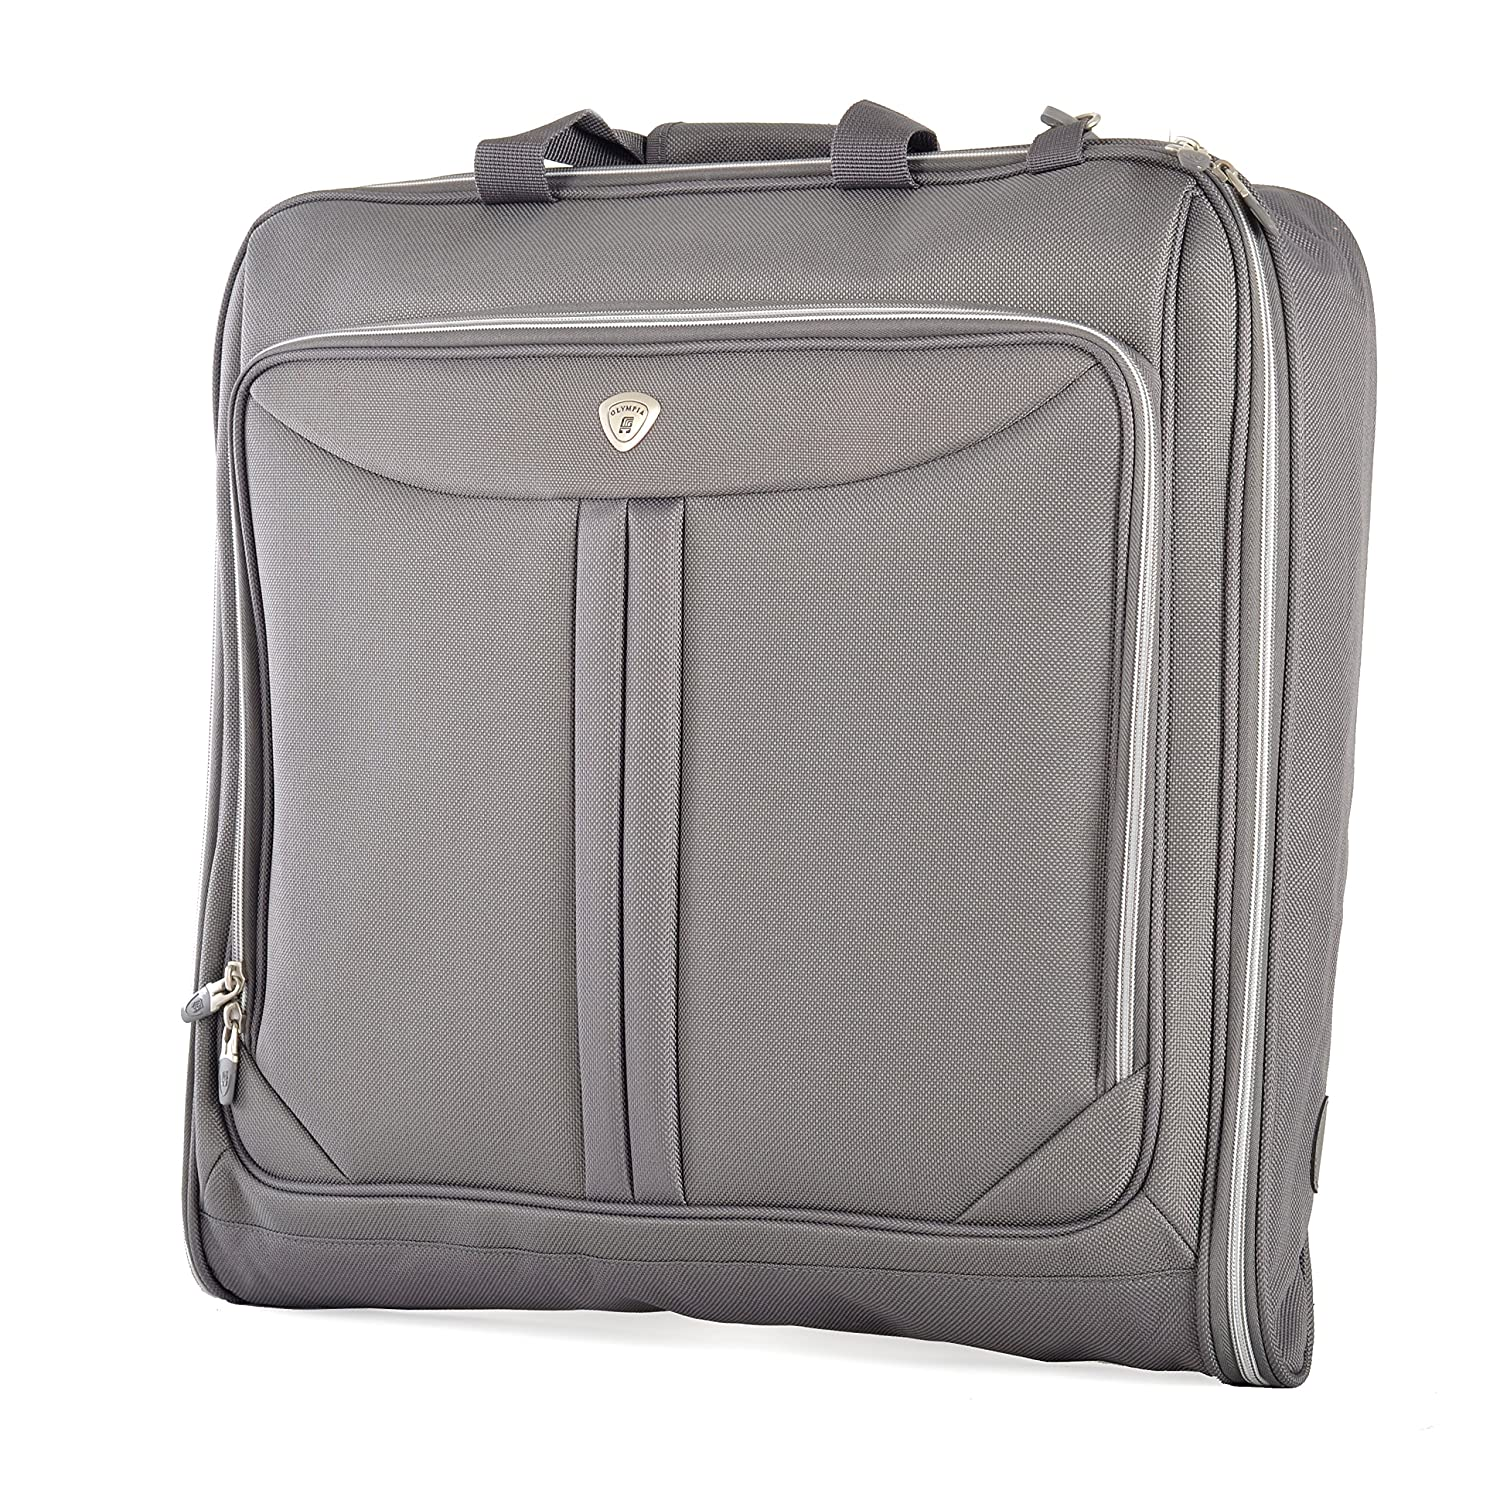 Olympia Deluxe Garment Bag, Black, One Size G-7740-Black-One Size